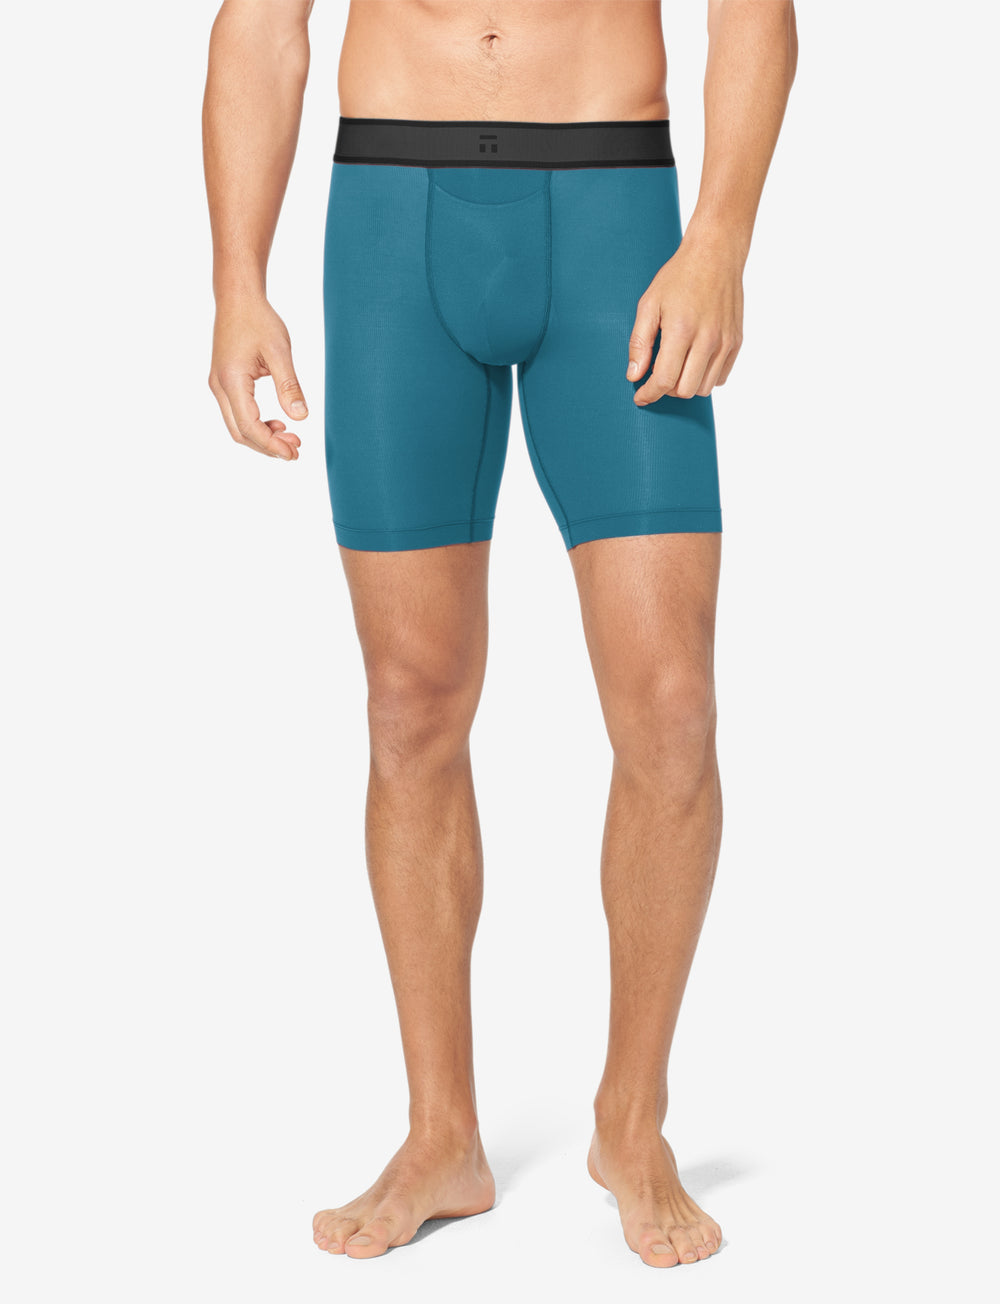 1aaccdcdd74bc Men's Air Boxer Brief: Light & Stylish Underwear | Tommy John